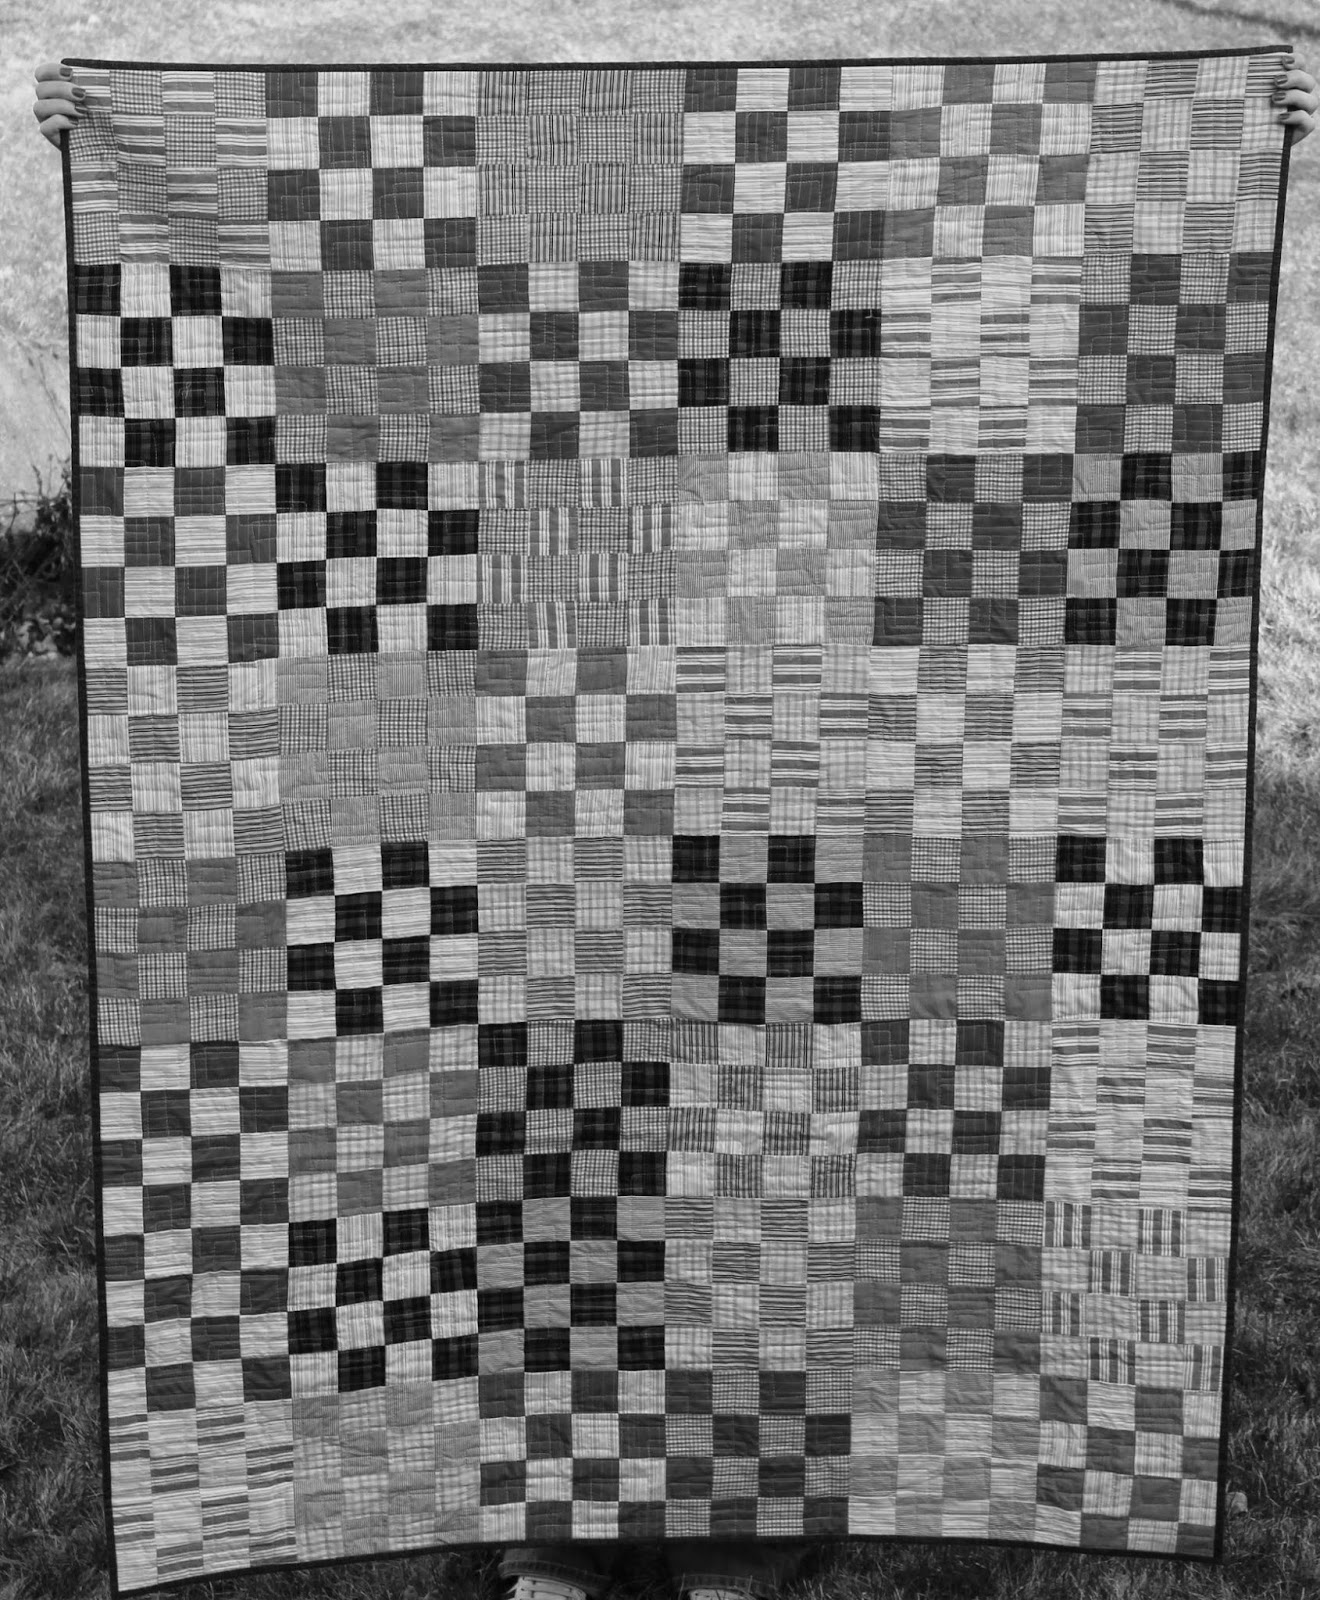 Black & White Quilt Picture